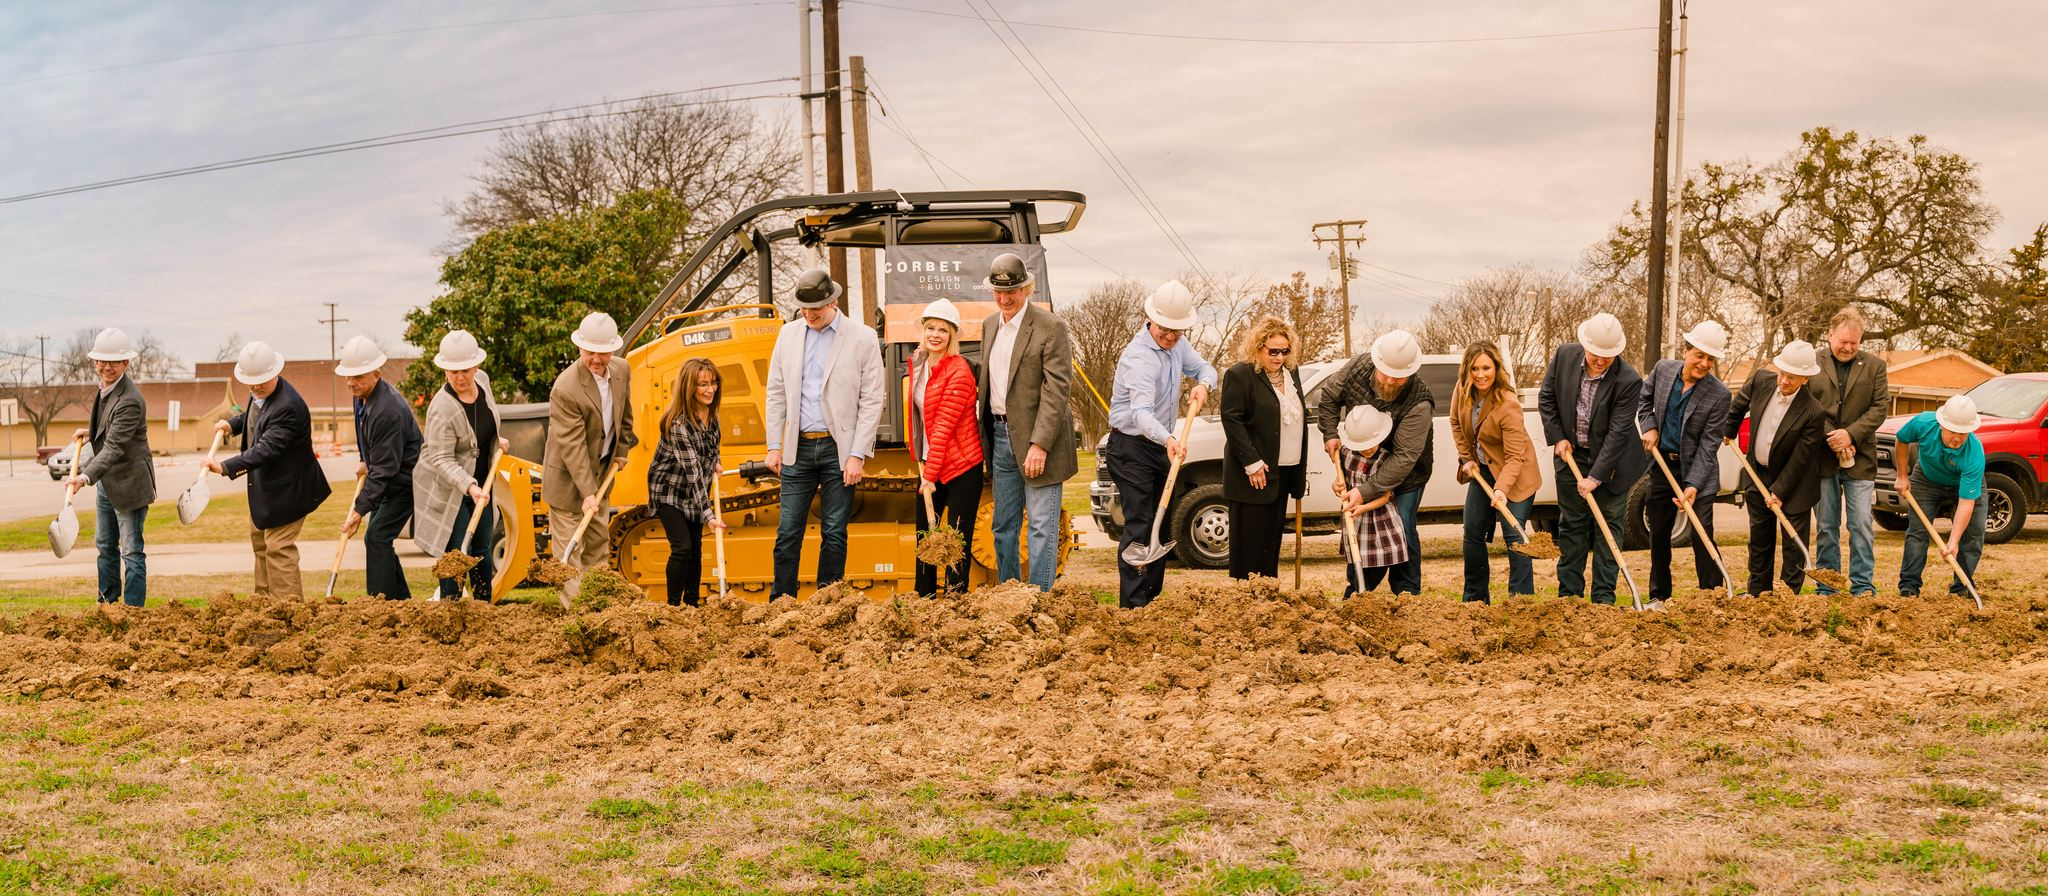 Old Town Station Phase 2 breaks ground